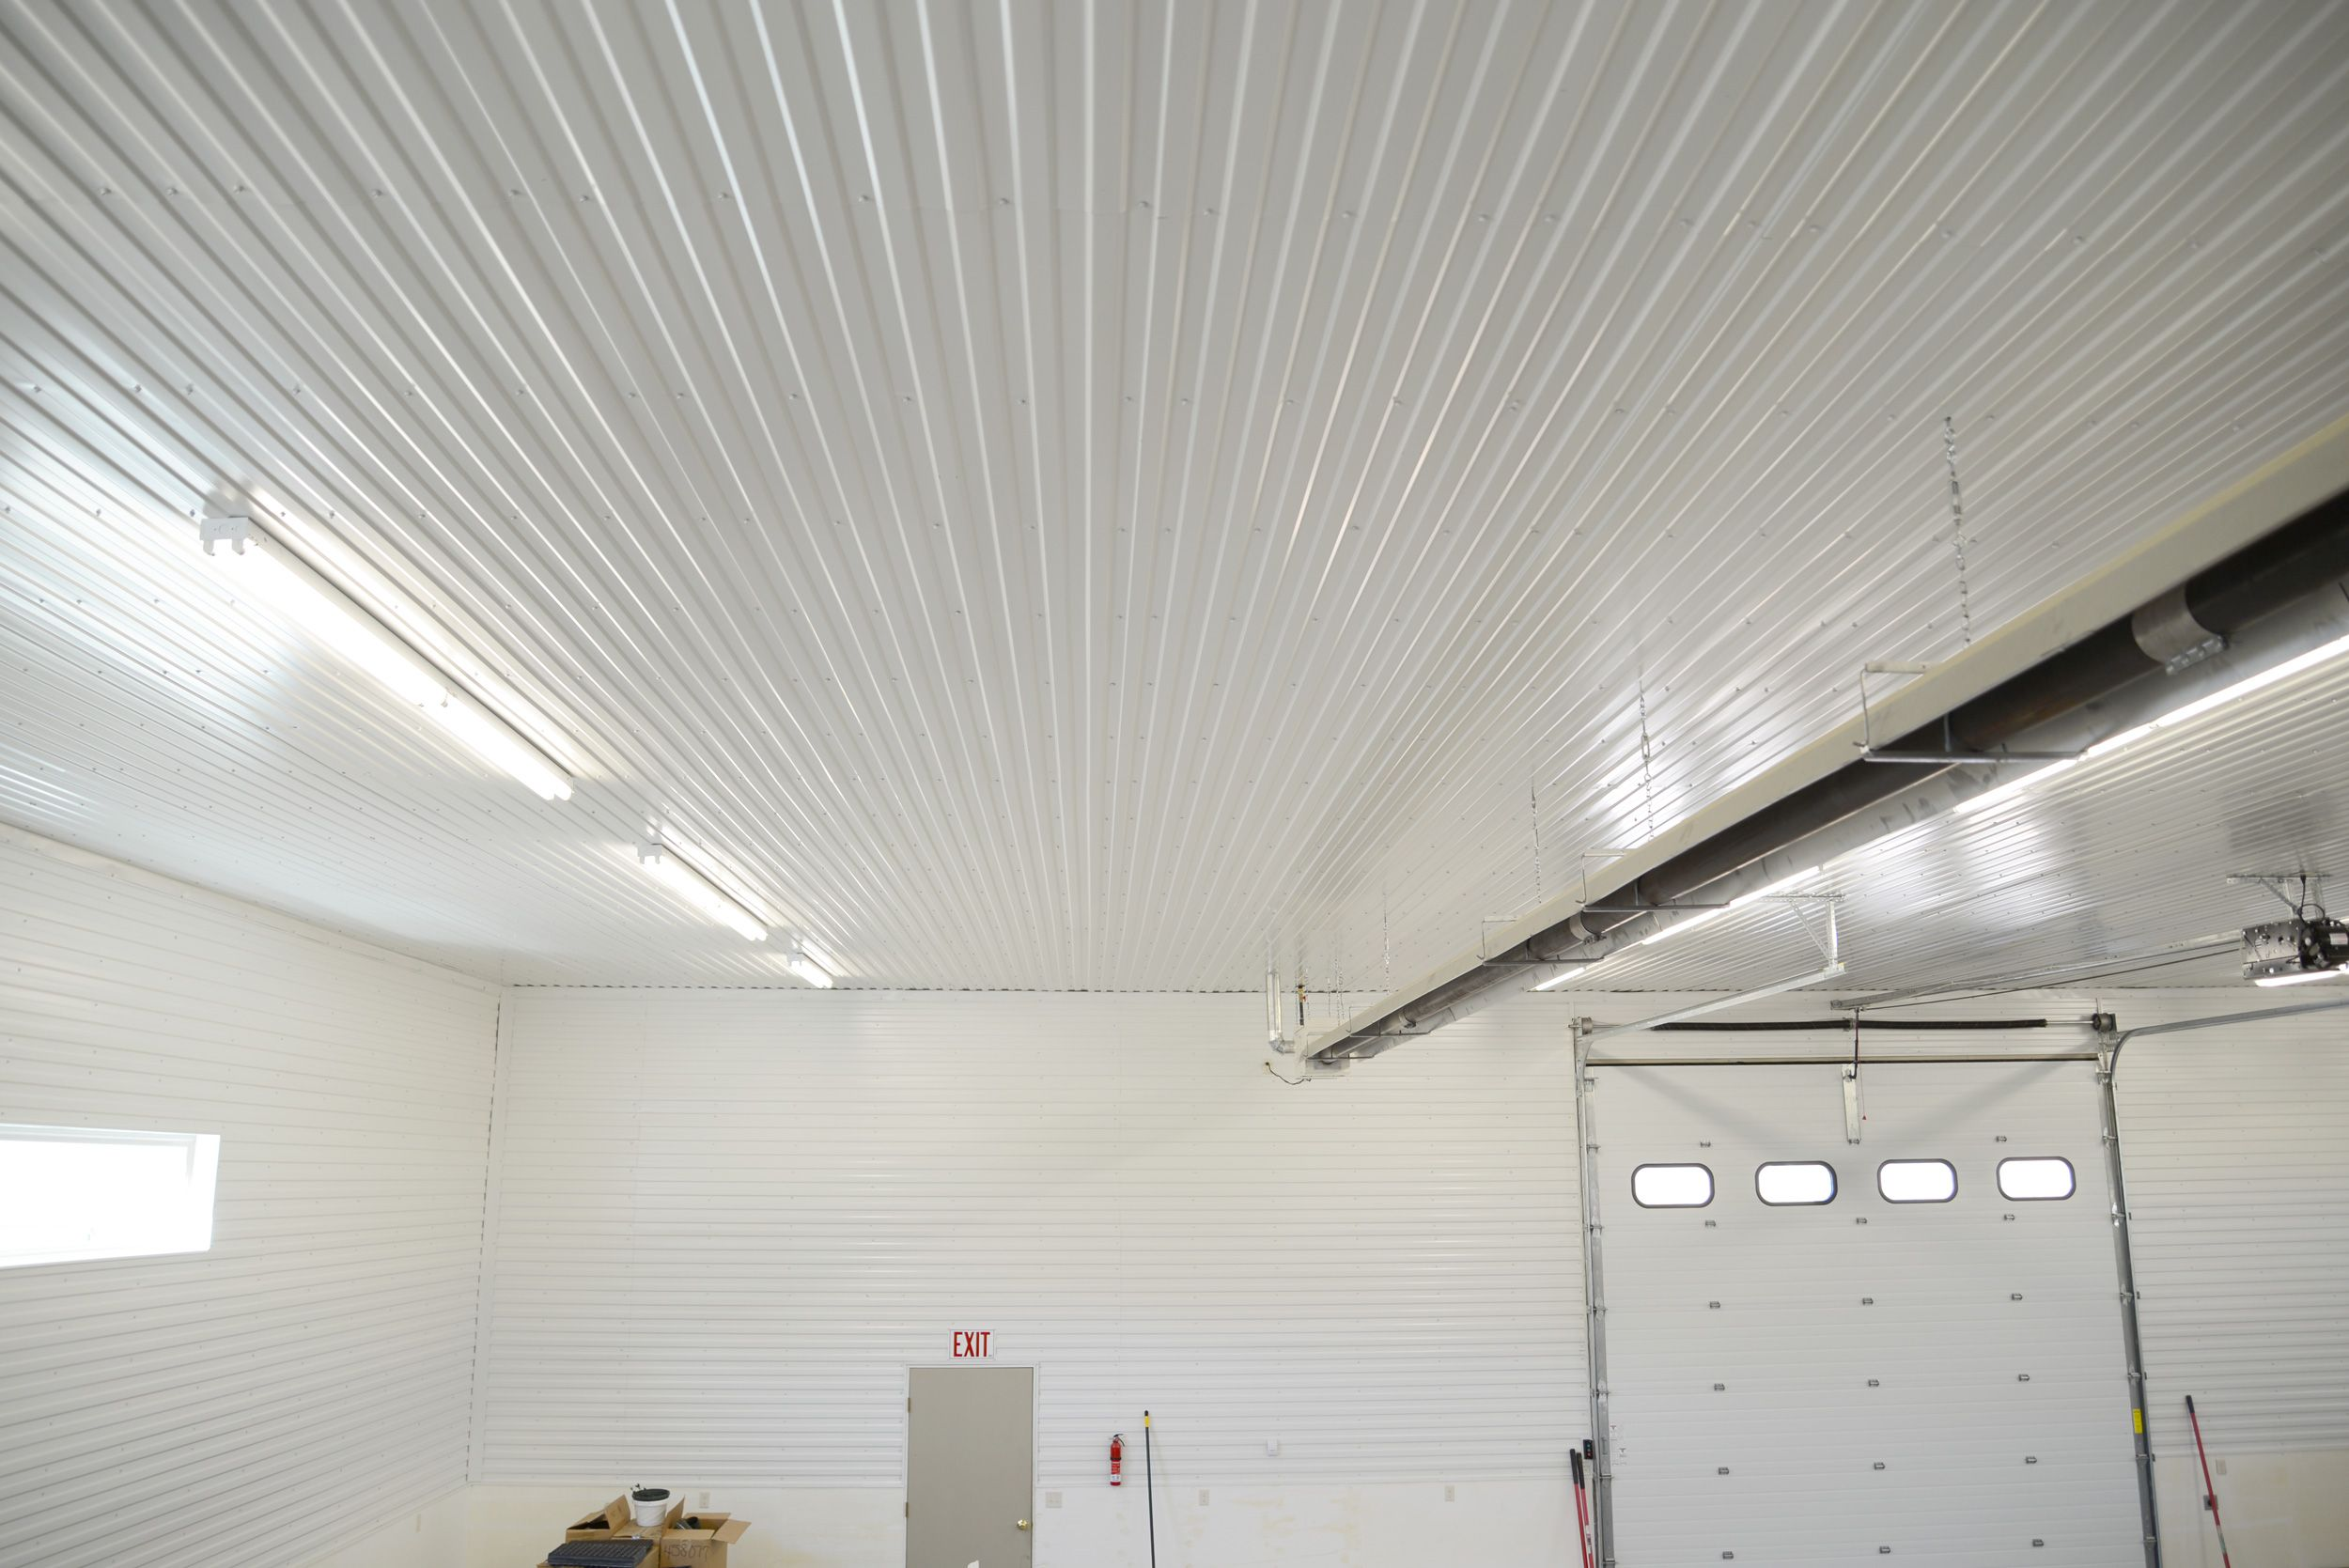 3 Metal Roofing And Siding Panels For Interiors Metal Wall Panel Metal Roof Corrugated Metal Roof